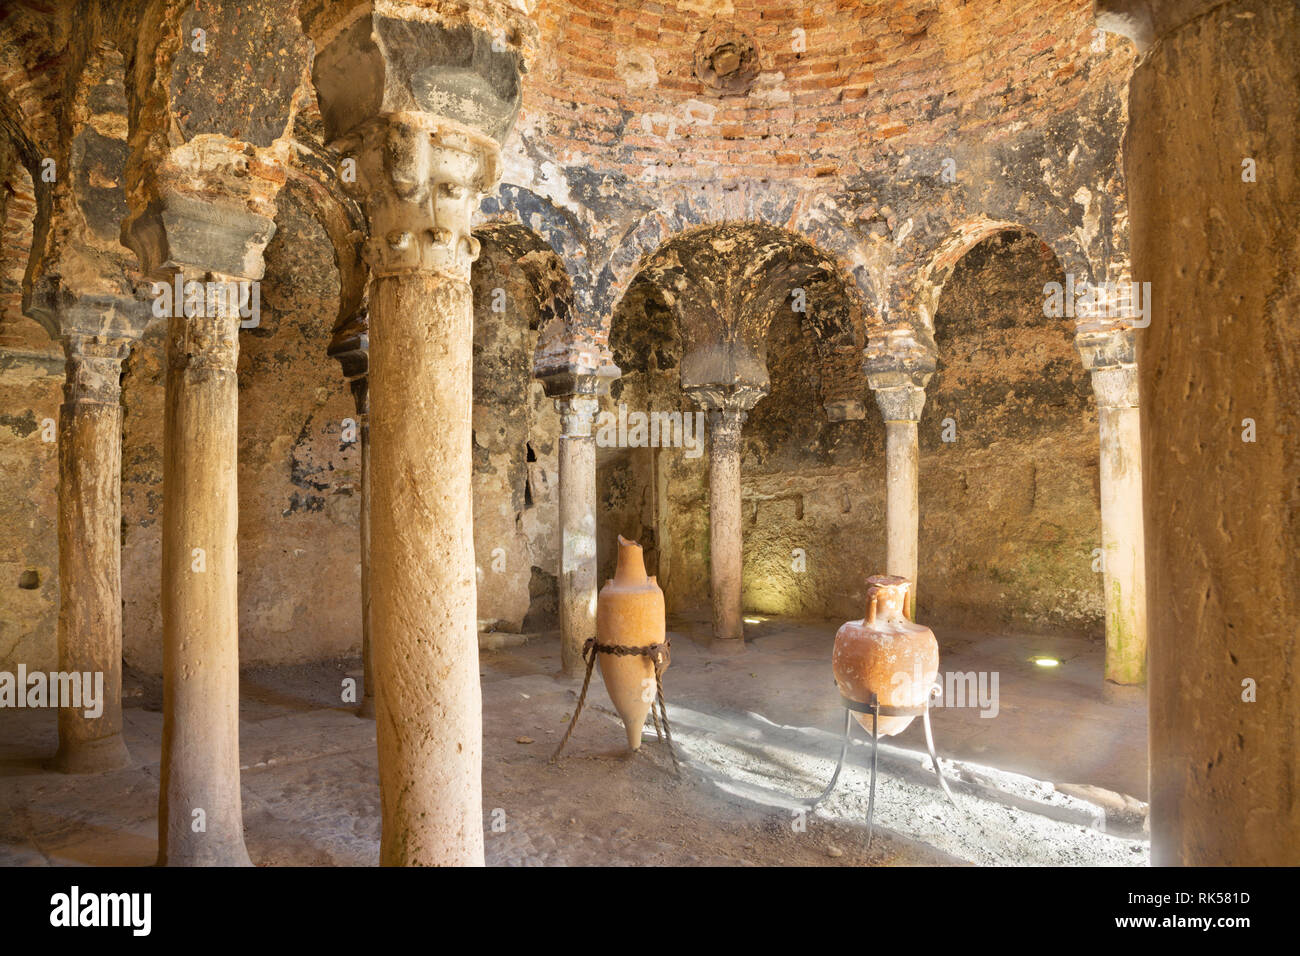 PALMA DE MALLORCA, SPAIN - JANUARY 27, 2019: The little medieval bathhouse - Banos arabes with the typically archs. - Stock Image